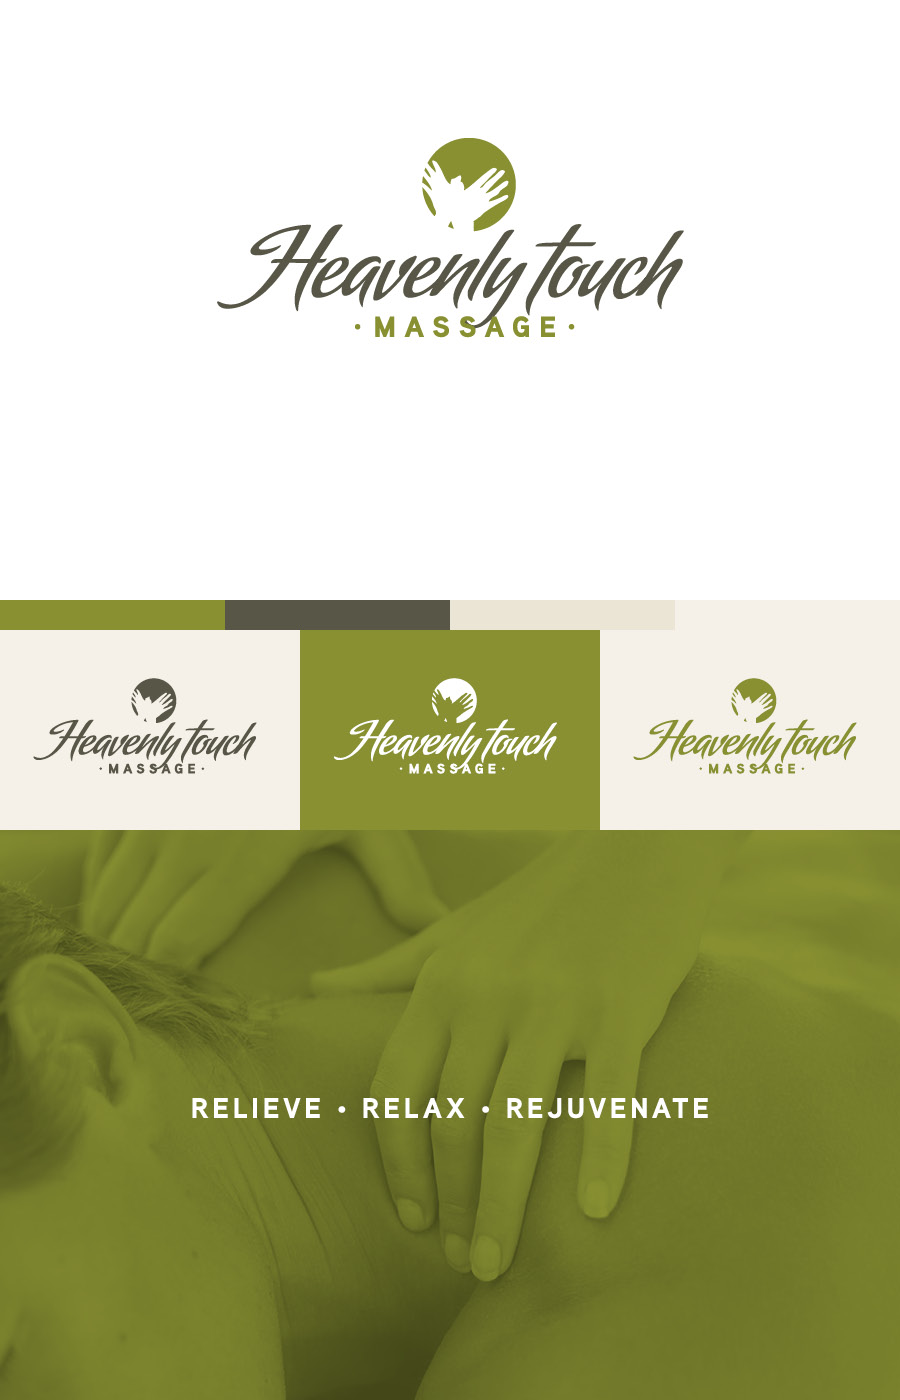 Heavenly Touch Massage Branding